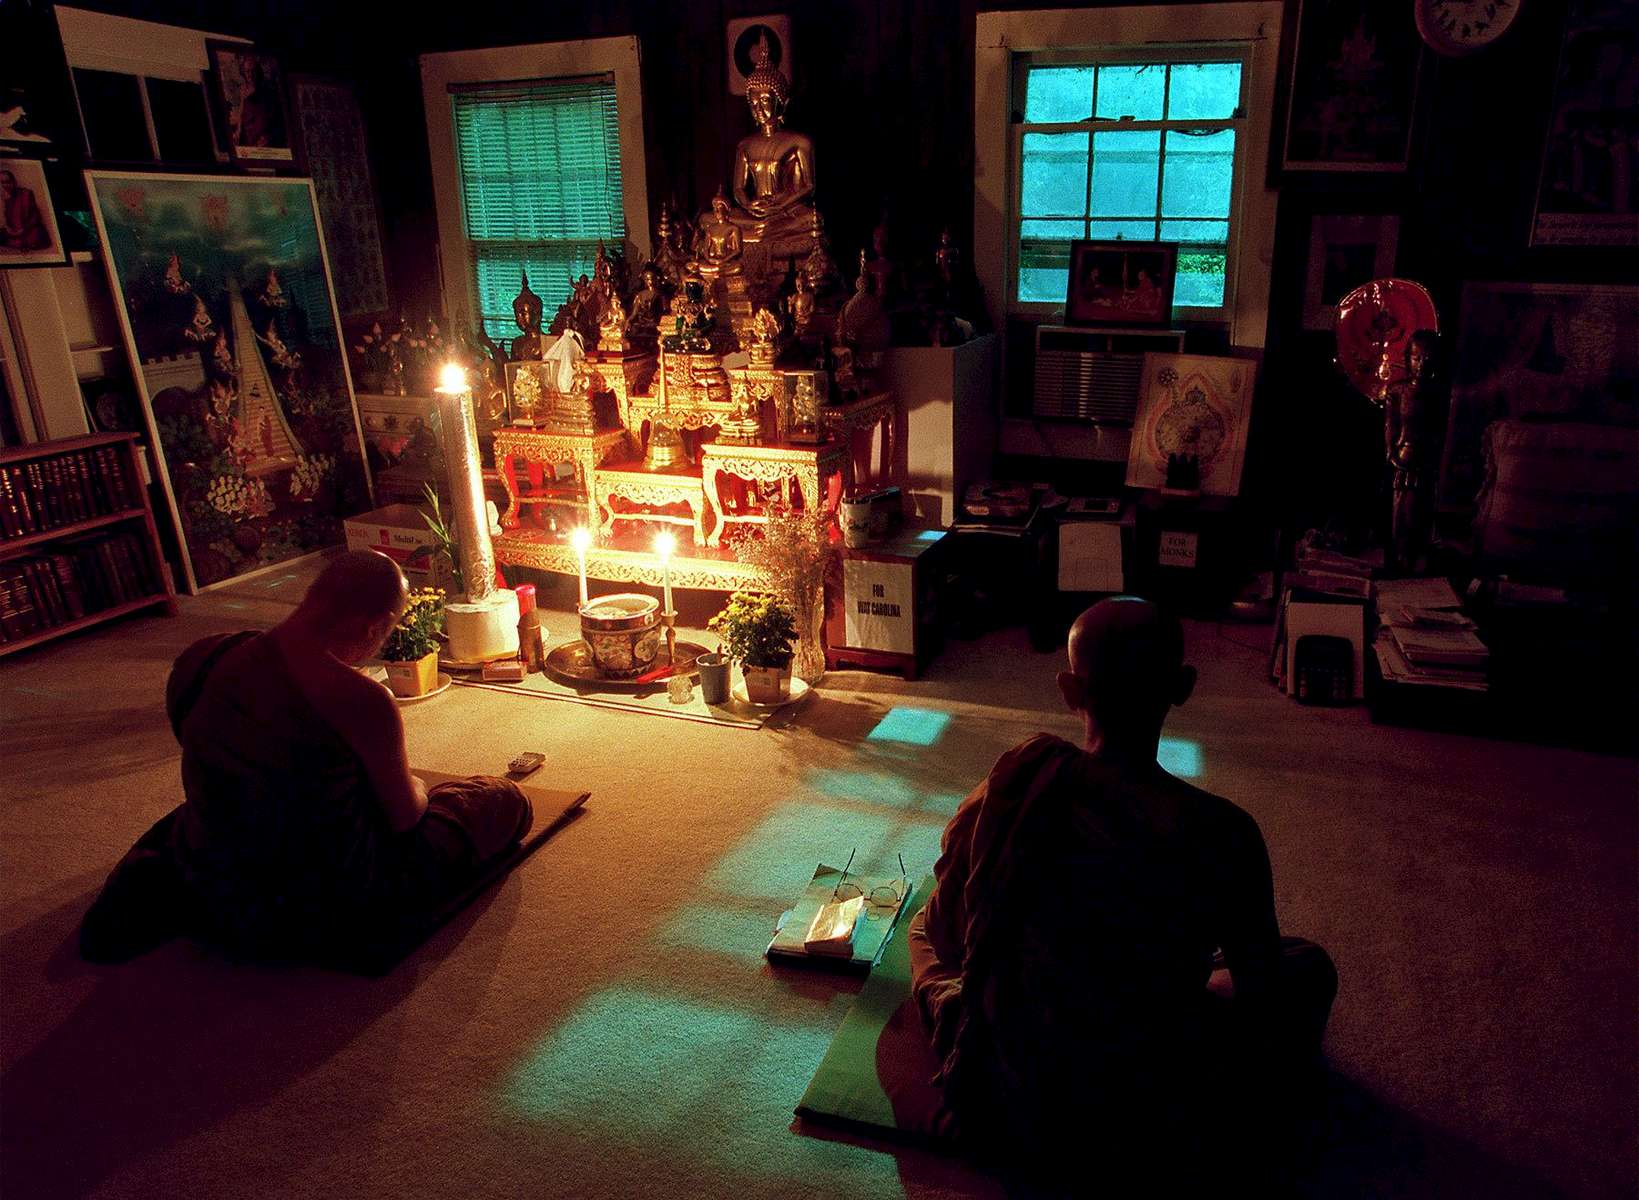 Abbott Phrakru Buddhamonpricha (L) and monk Bun Reang Reangsisai meditate at the Wat Carolina on Saturday night in September. The monks at the temple meditate and chant twice a day. Morning meditation starts at 8AM and evening meditation is at 8PM.